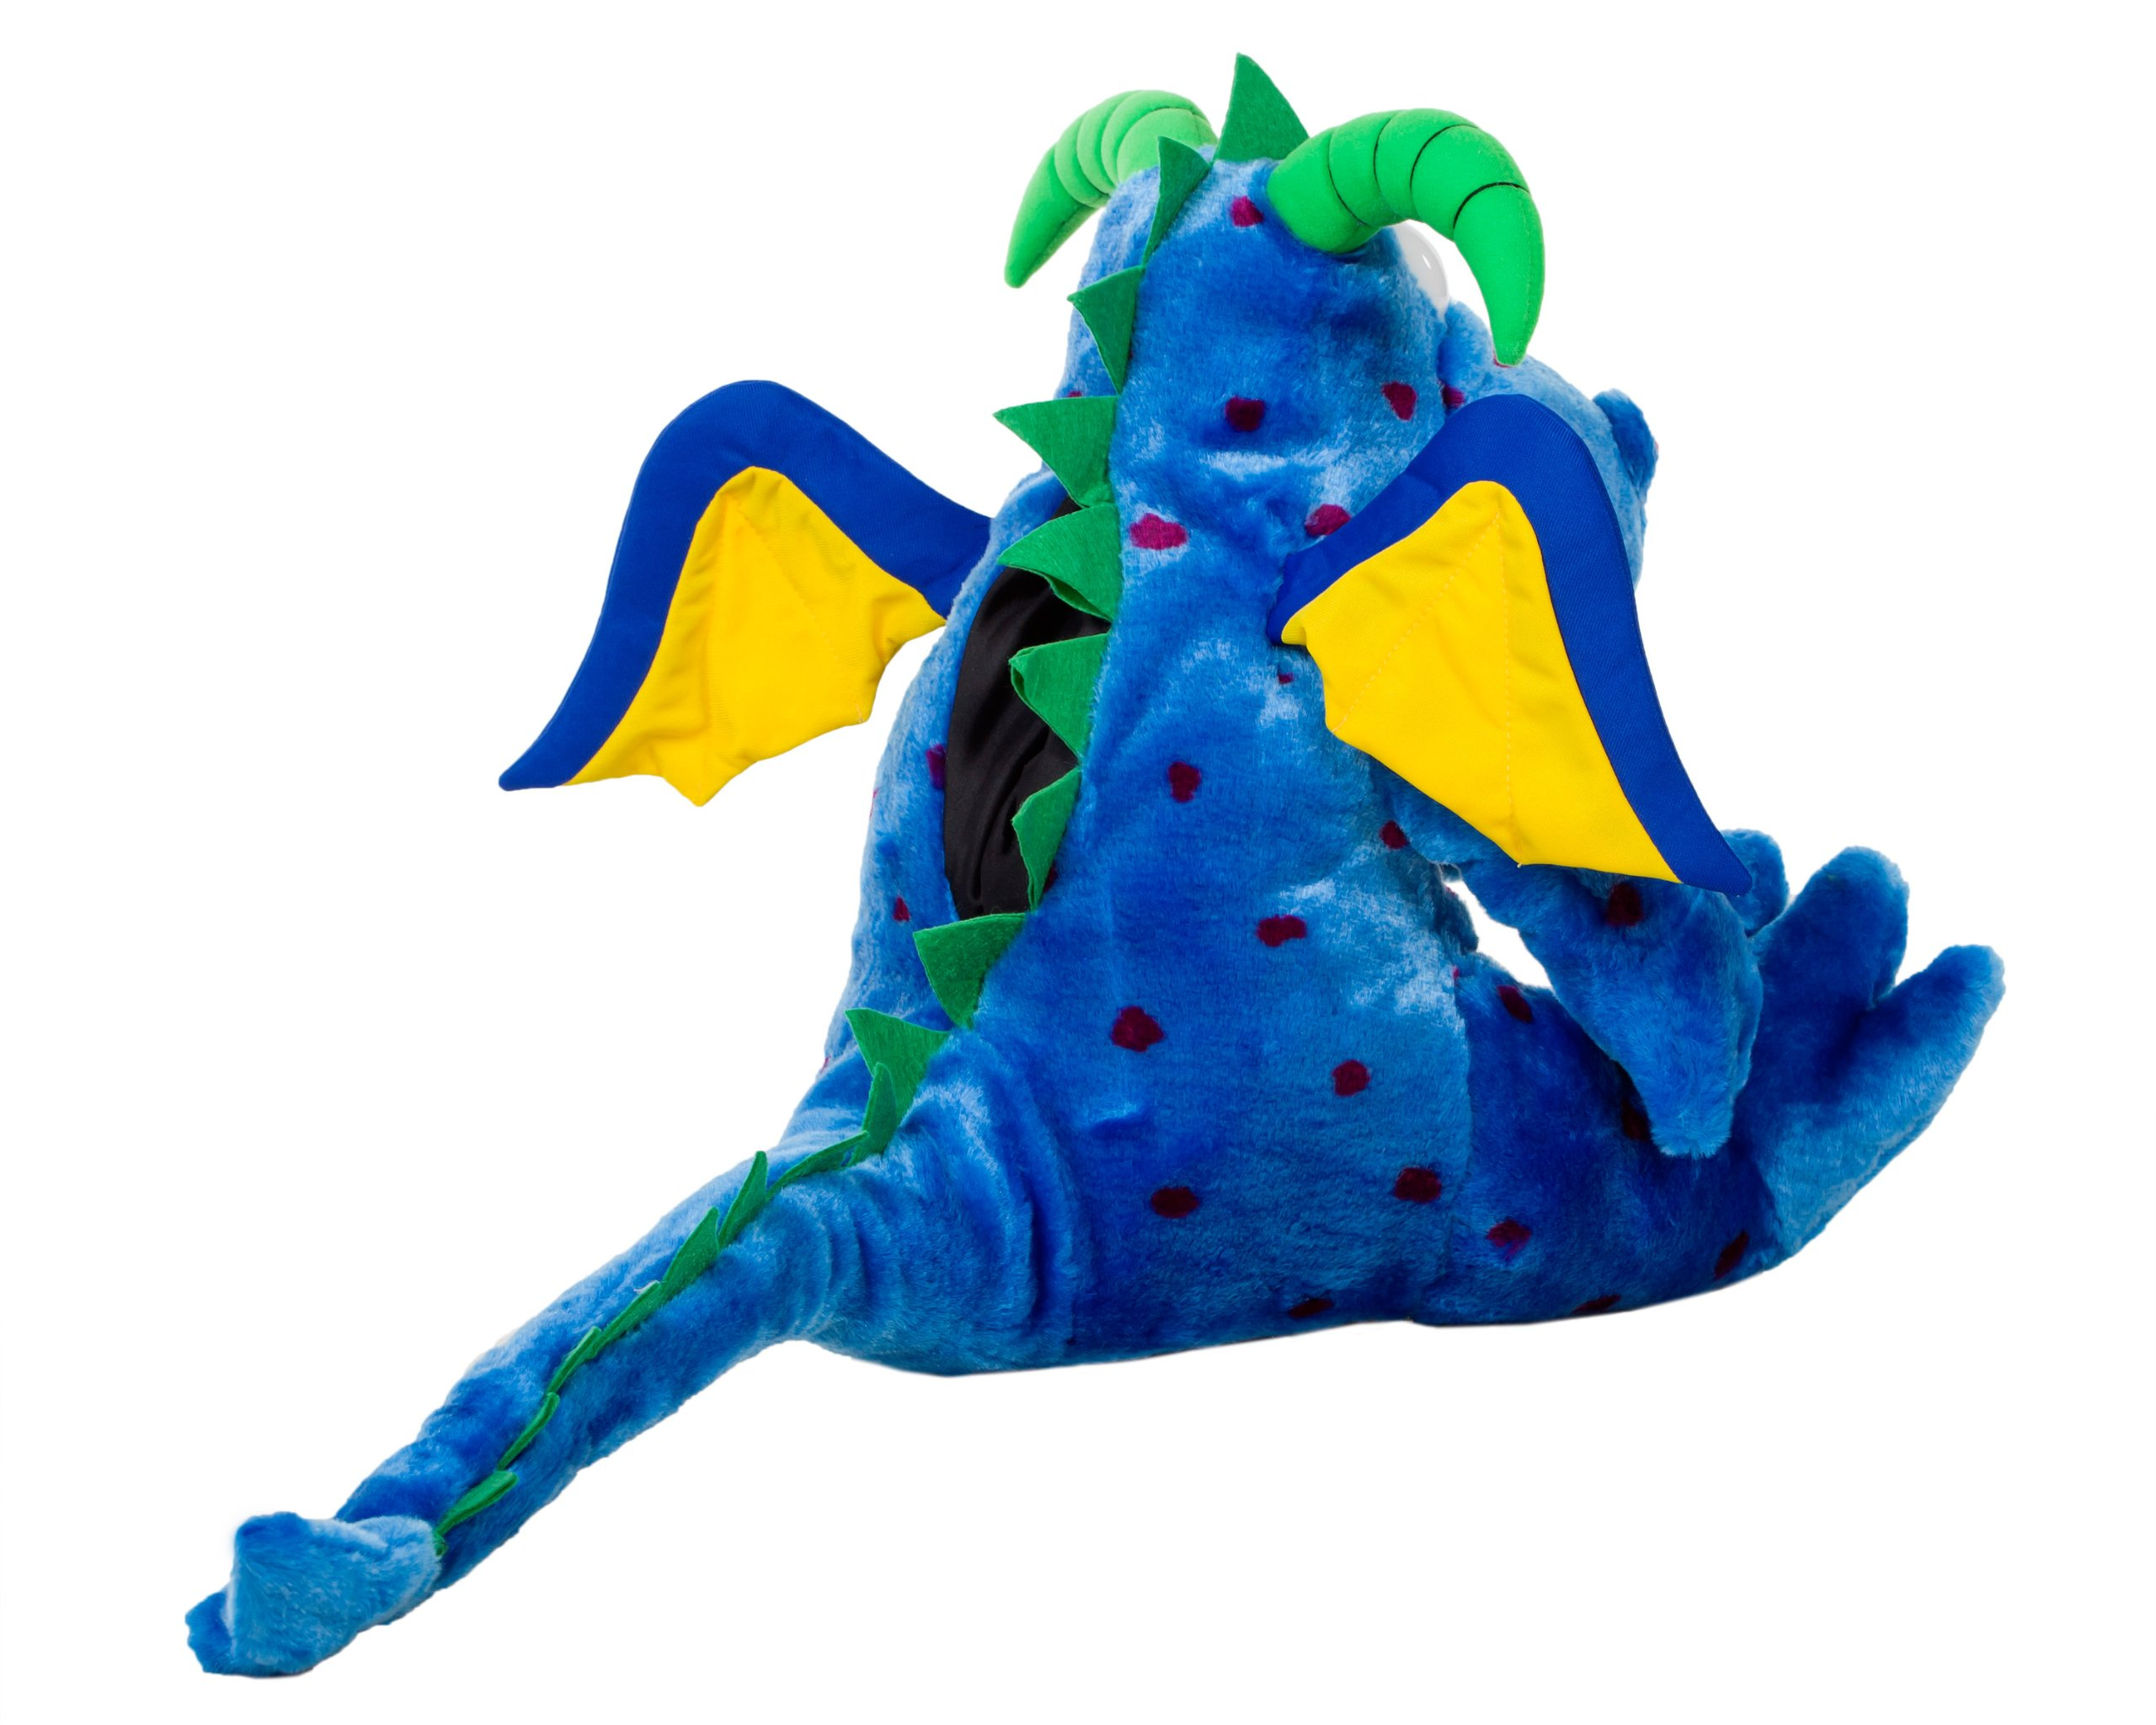 Oral Health Presentation Puppet Magi Dragon Educational Plush by StarSmilez (Image #2)